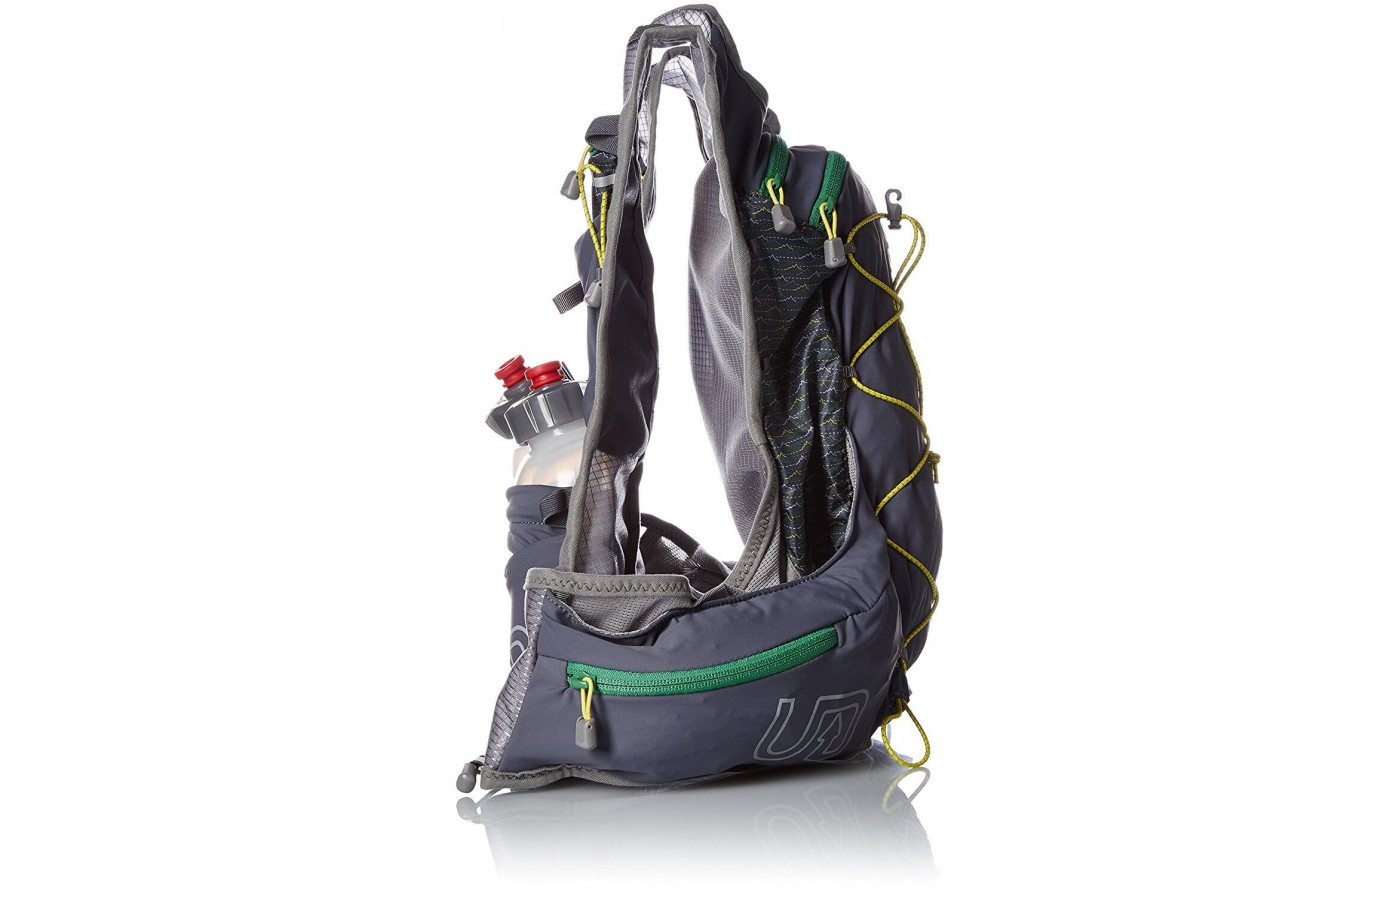 The Ultimate Direction Jurek FKT Vest has a total of 11 pockets and a large main compartment